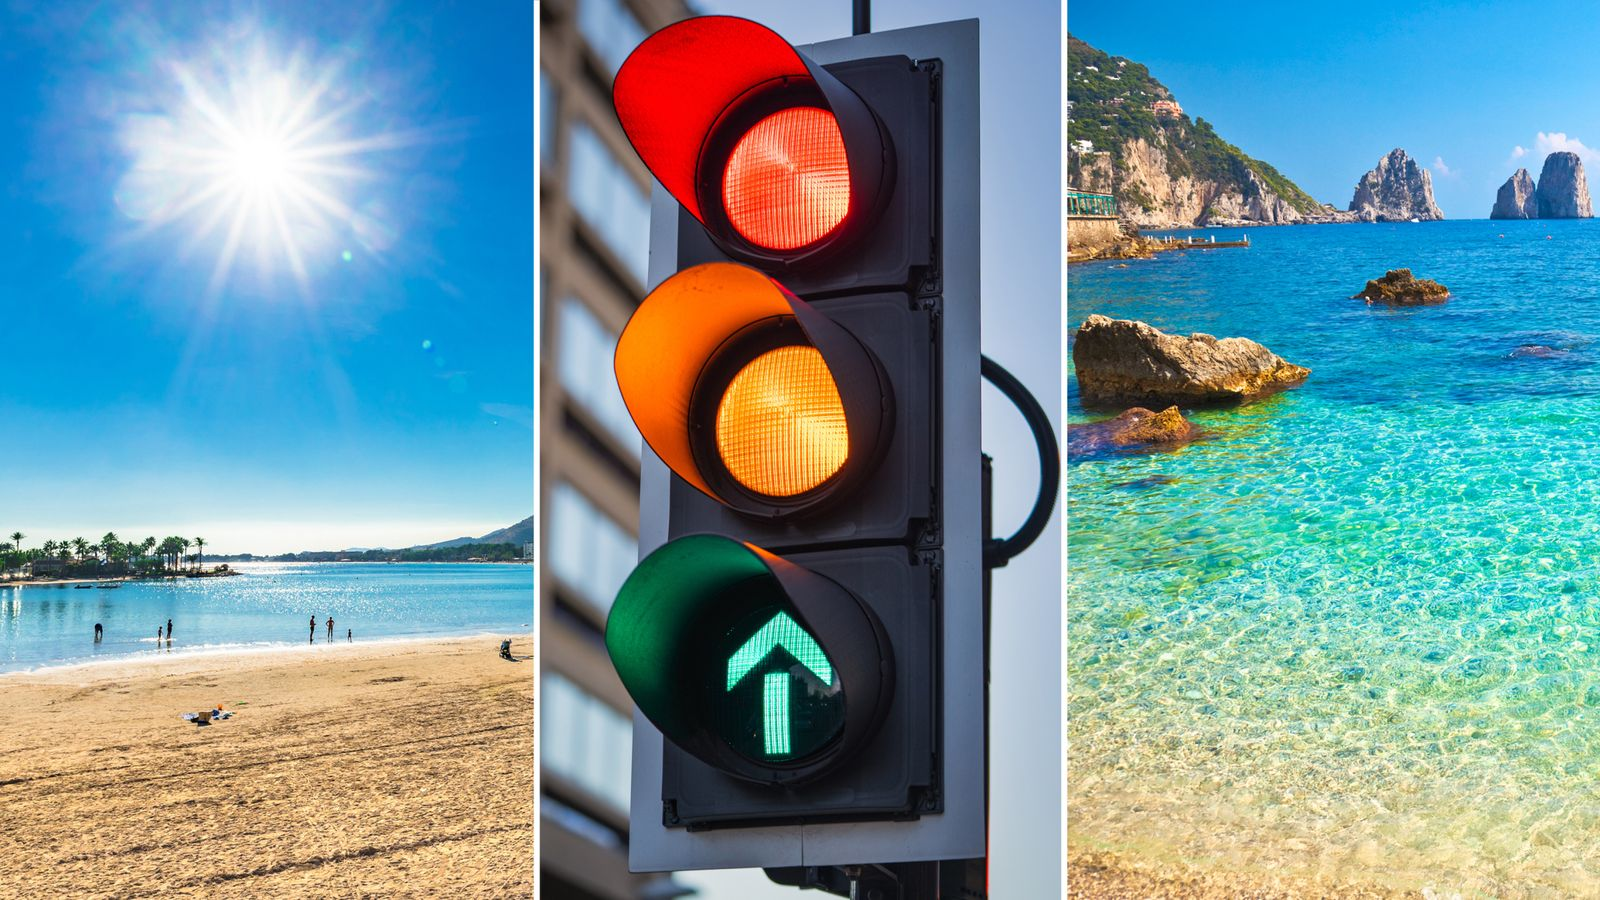 COVID-19: Bookings for holidays to Portugal go 'through the roof' - but angry airlines criticise the green list